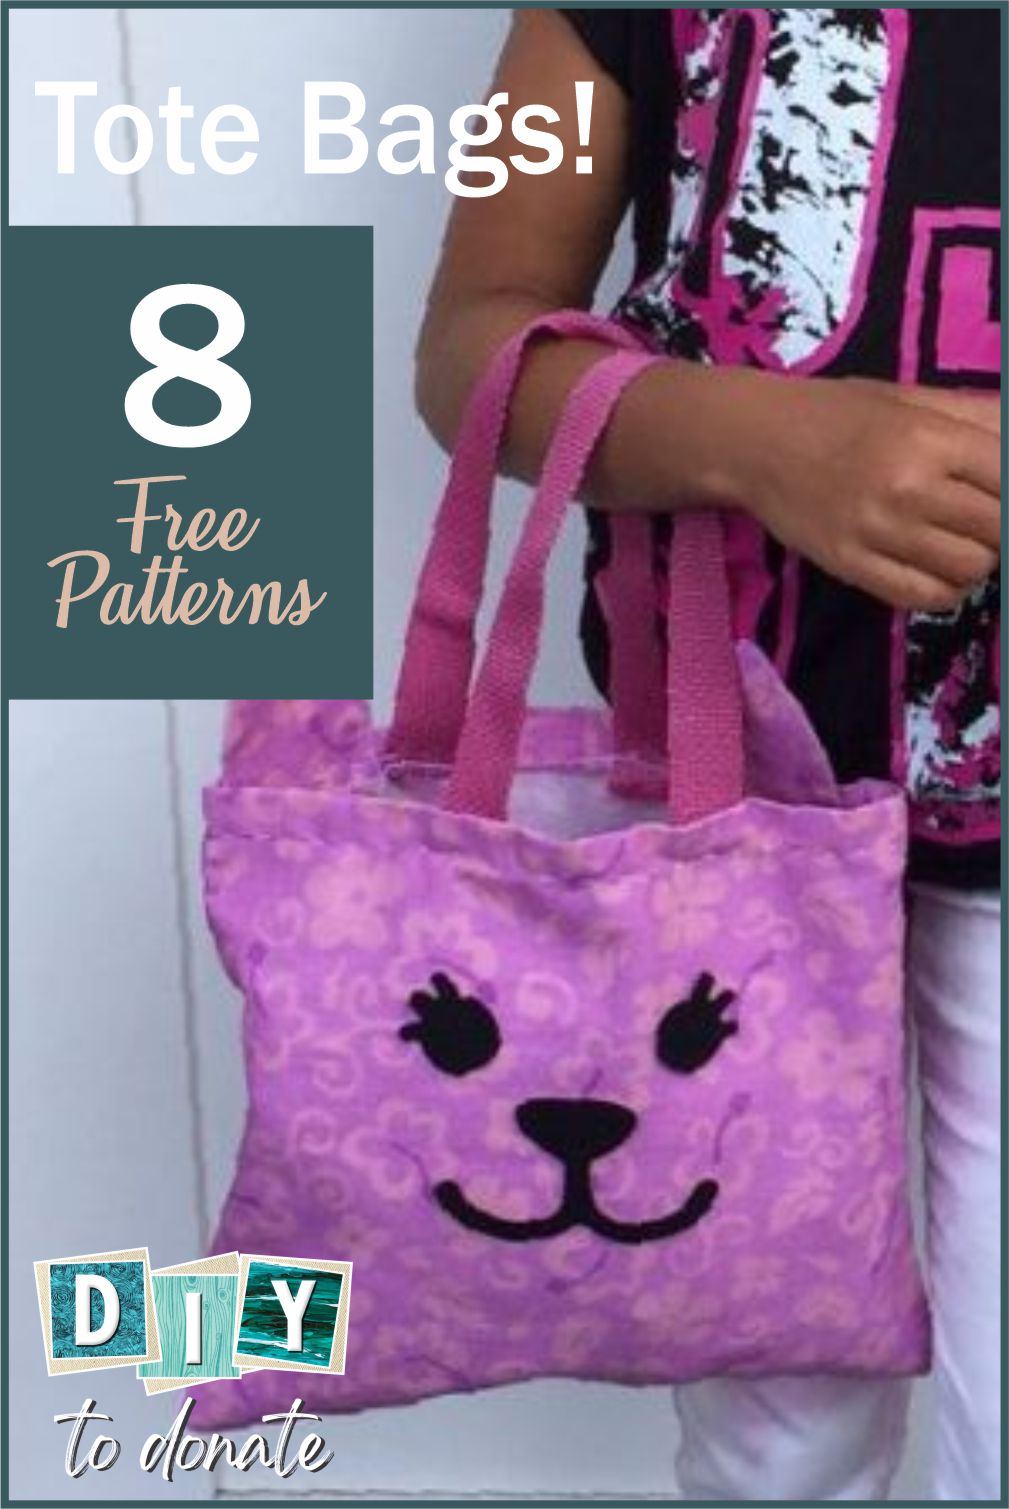 Choose from no sew DIY totes bags. totes from recycled products and easy sewing and crotchet totes. Make them for your favorite charity. #diytodonate #diy #donate #totebagstodonate #totebags #donation